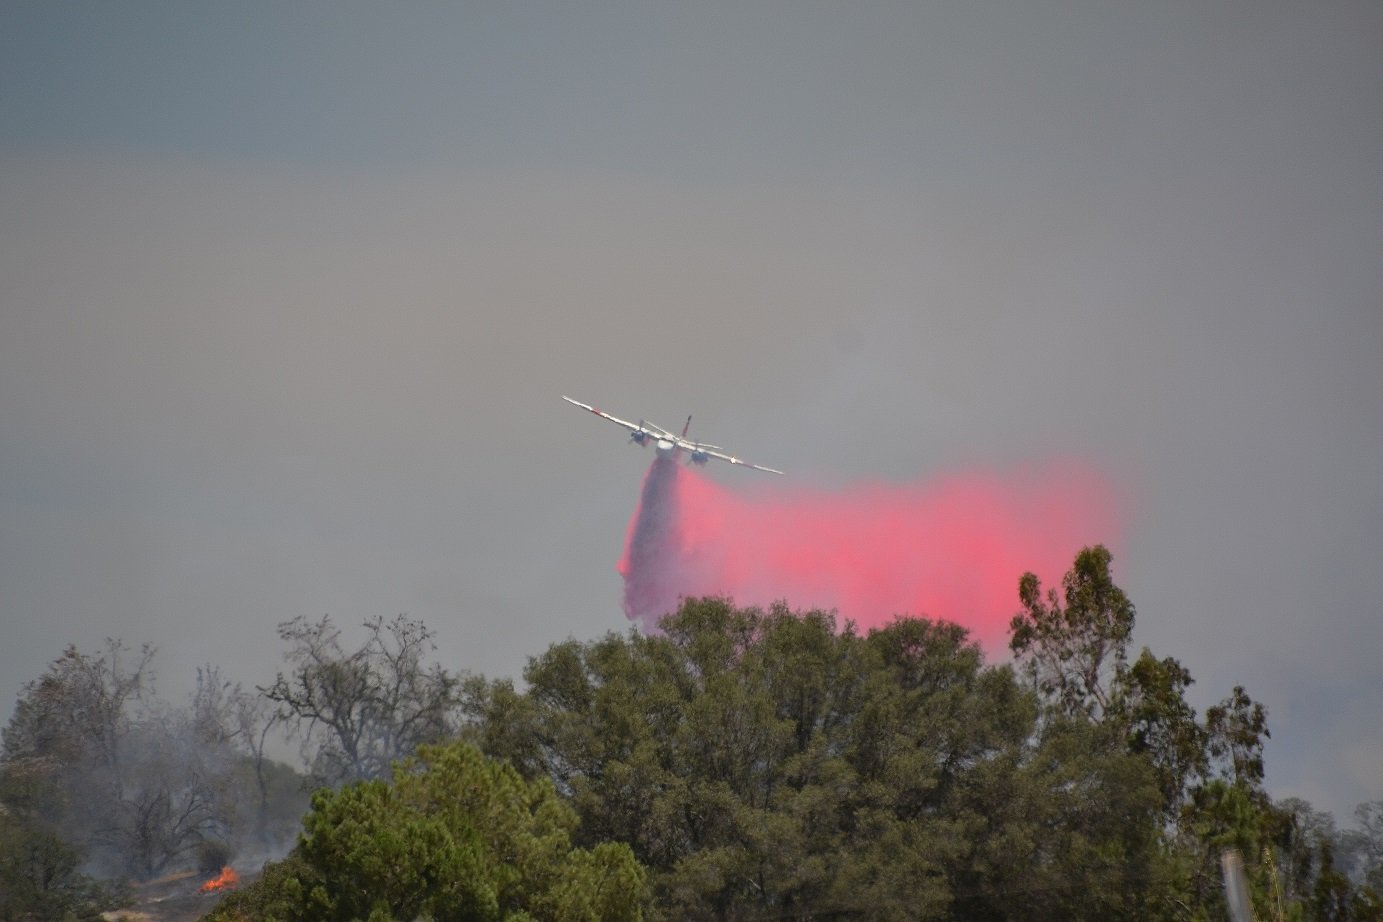 Air tanker over Red Fire - photo by Gina Clugston